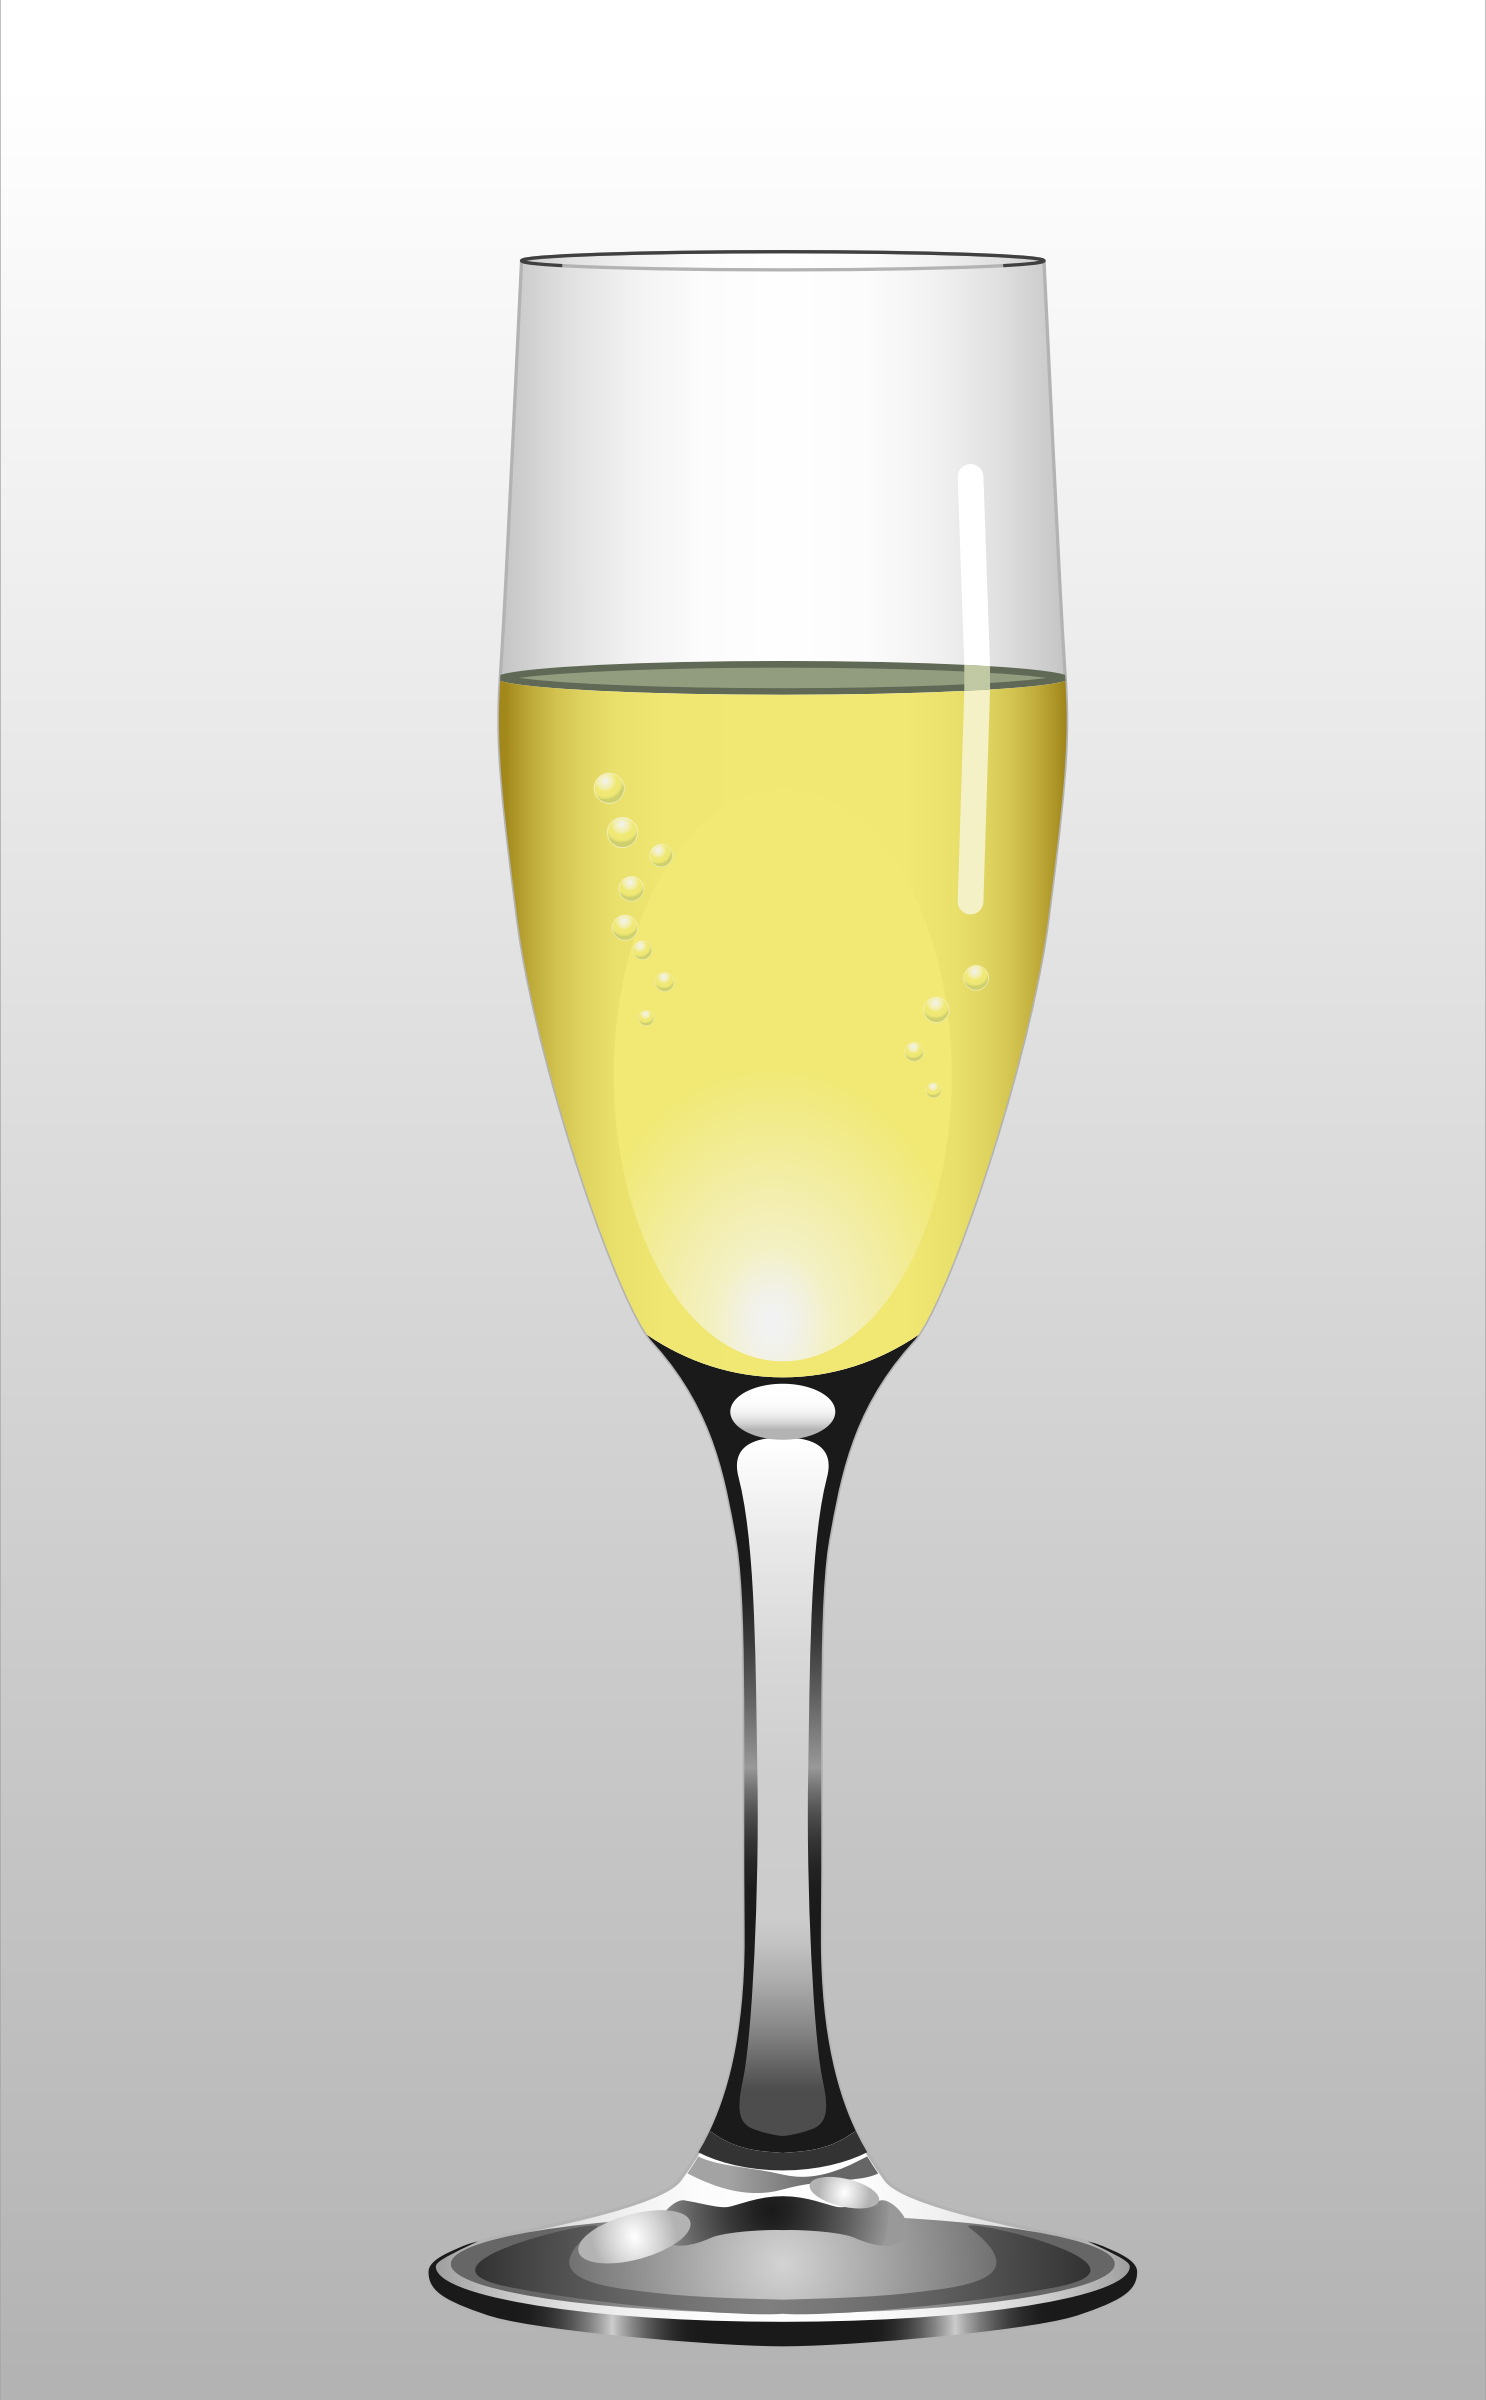 Glass of Champagne by Muga